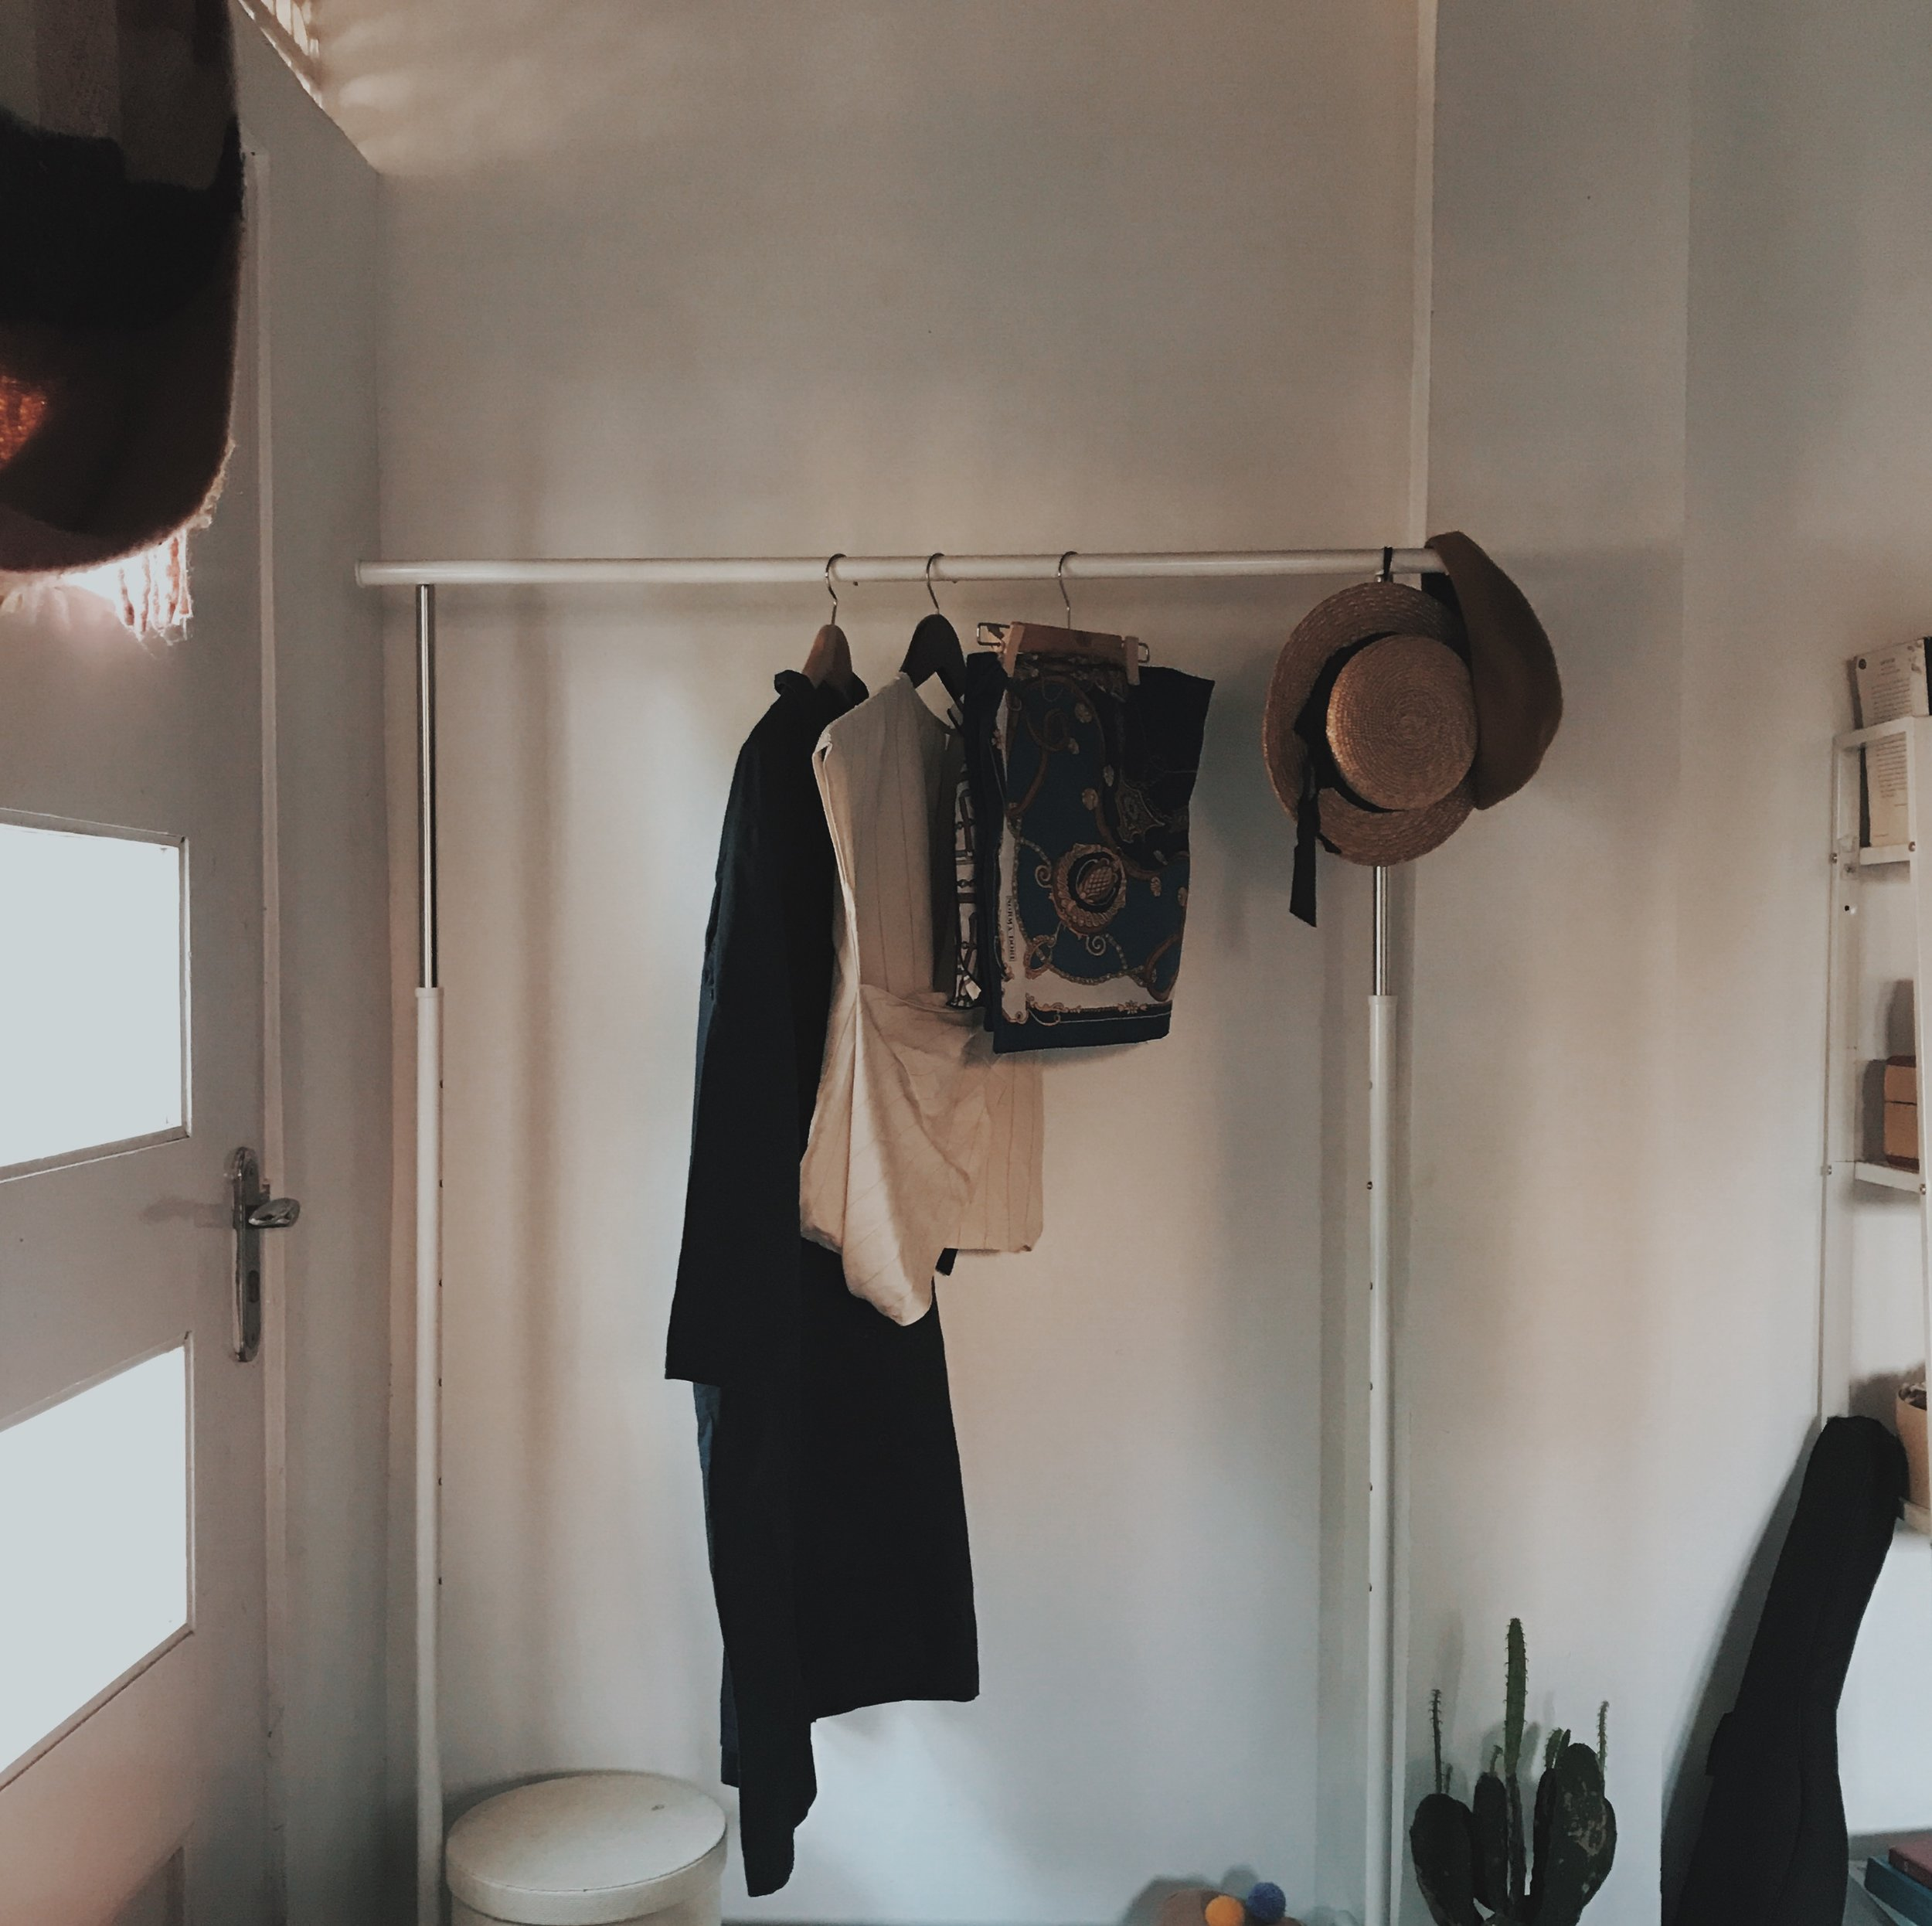 one of the thing that took me a week to finish: re-arranging my closet.